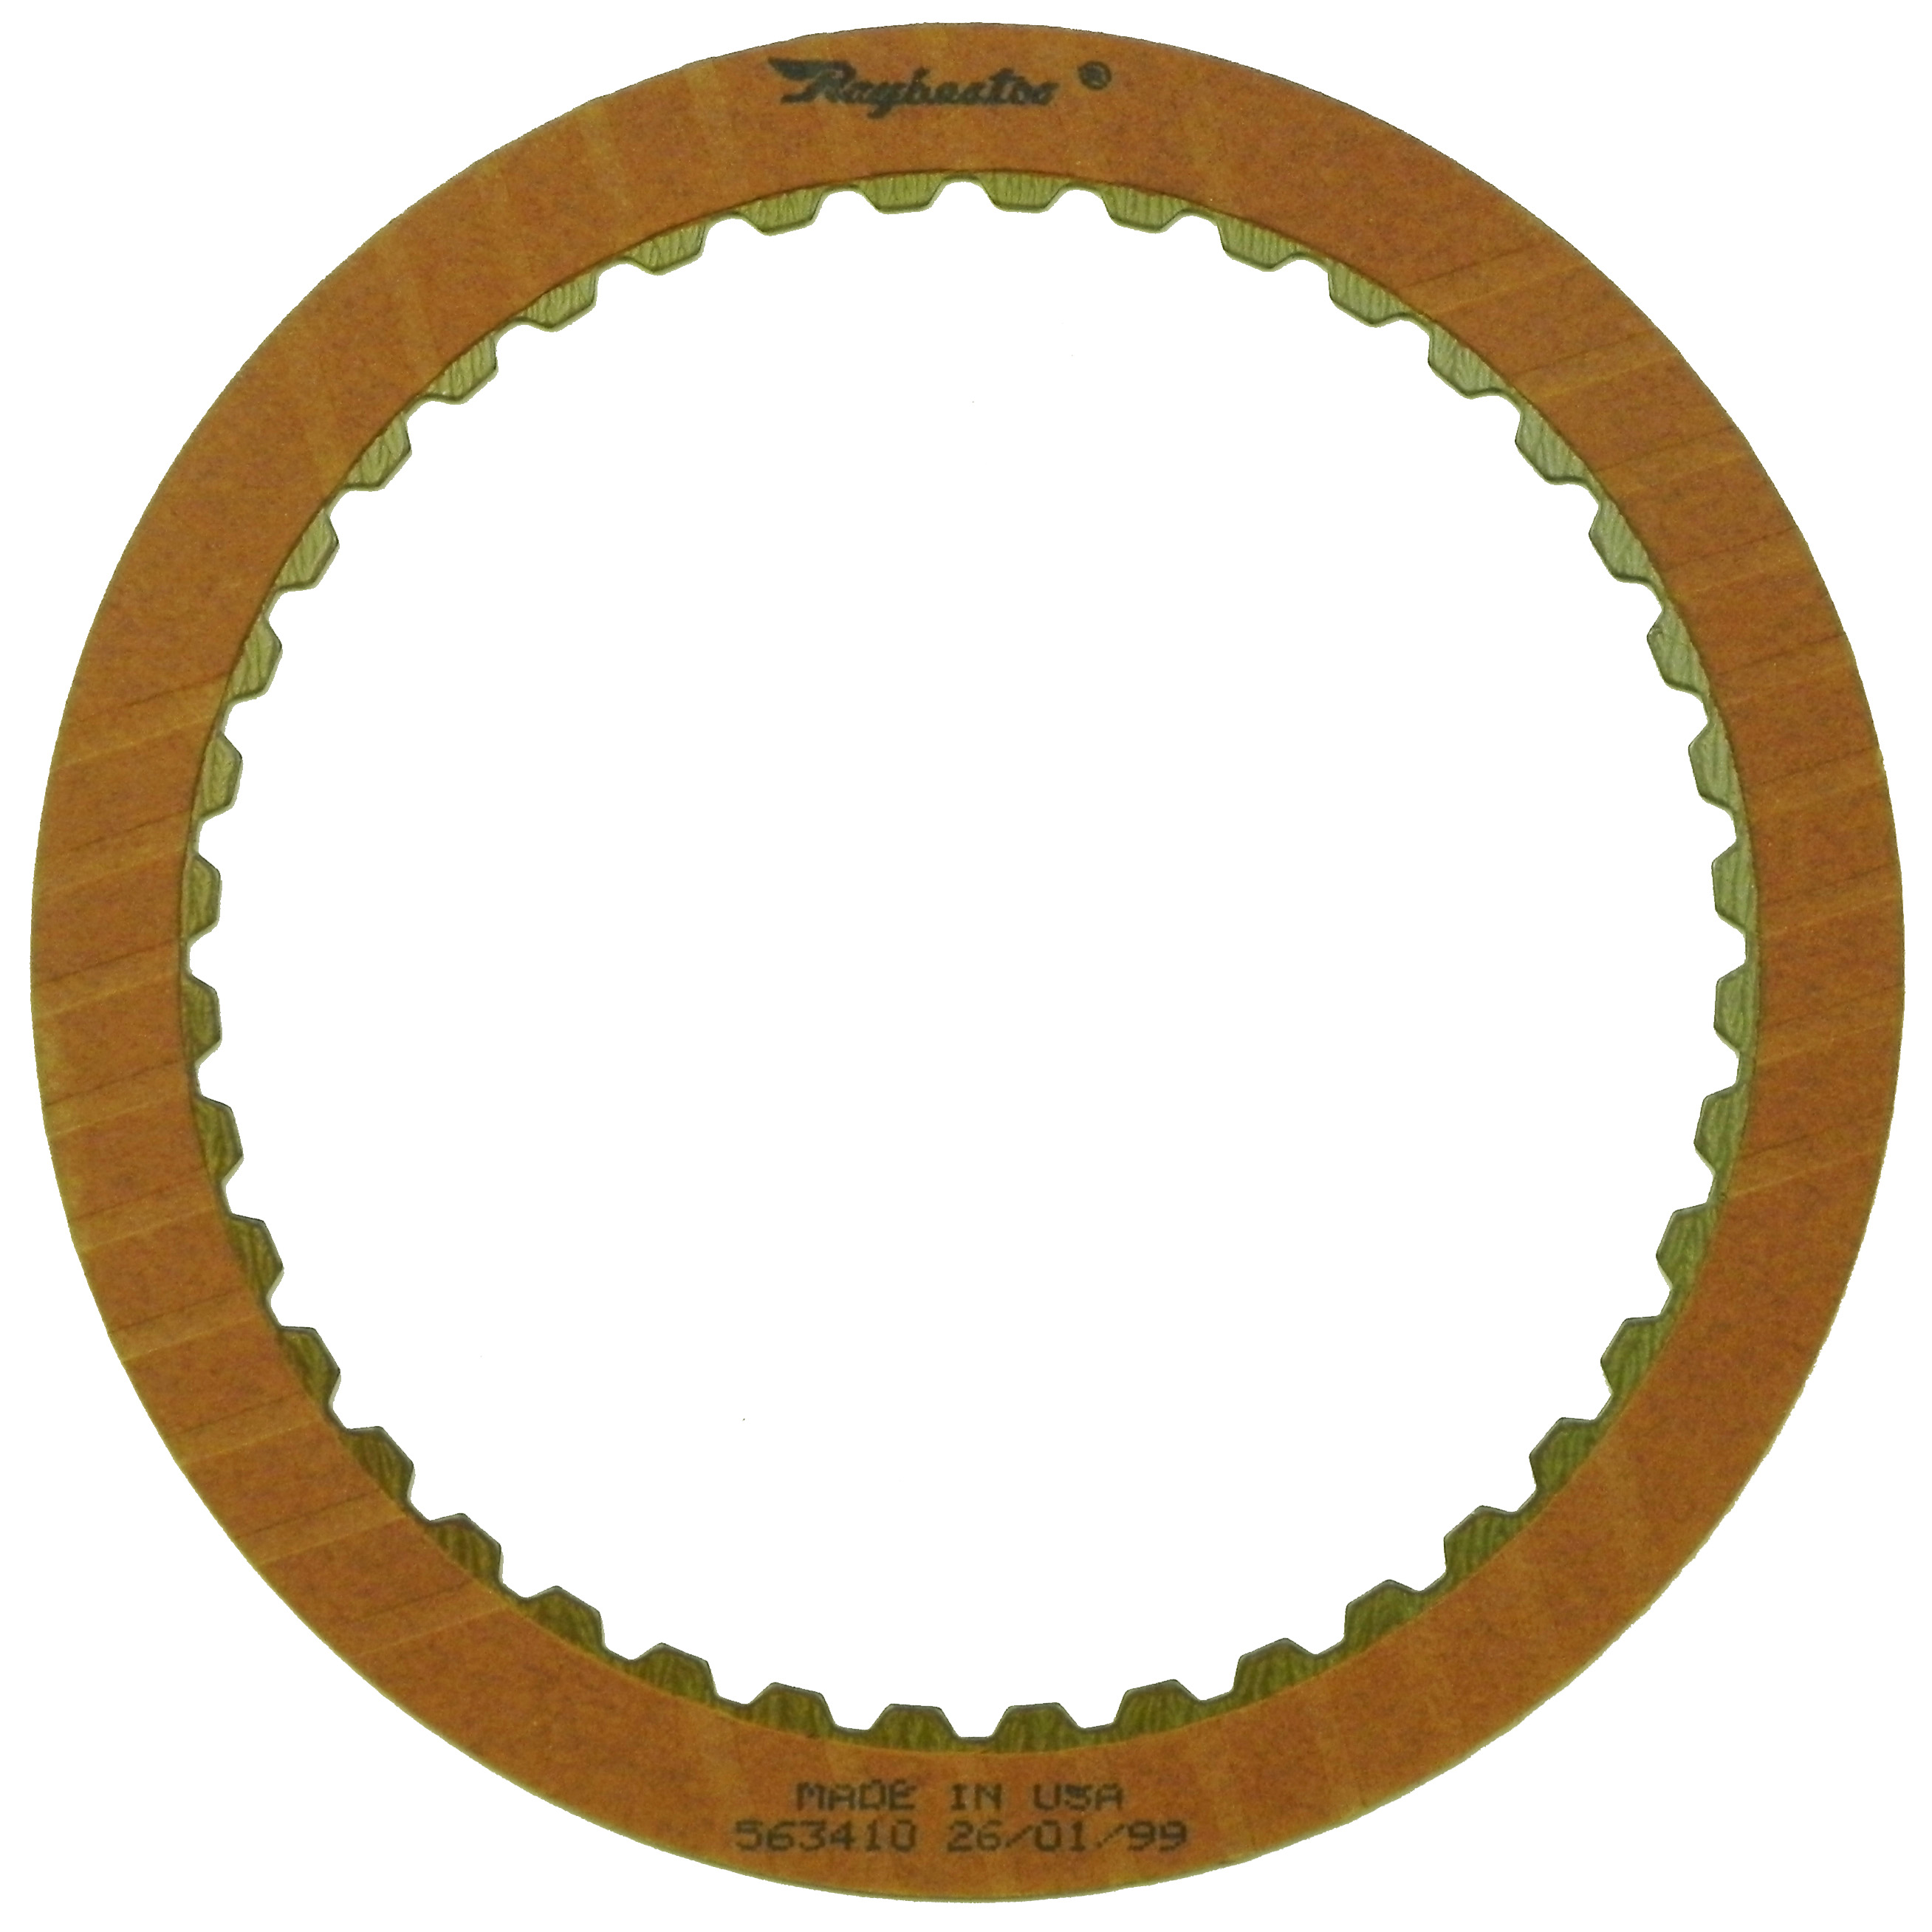 R563410 | 1986-ON Friction Clutch Plate OE Replacement Direct